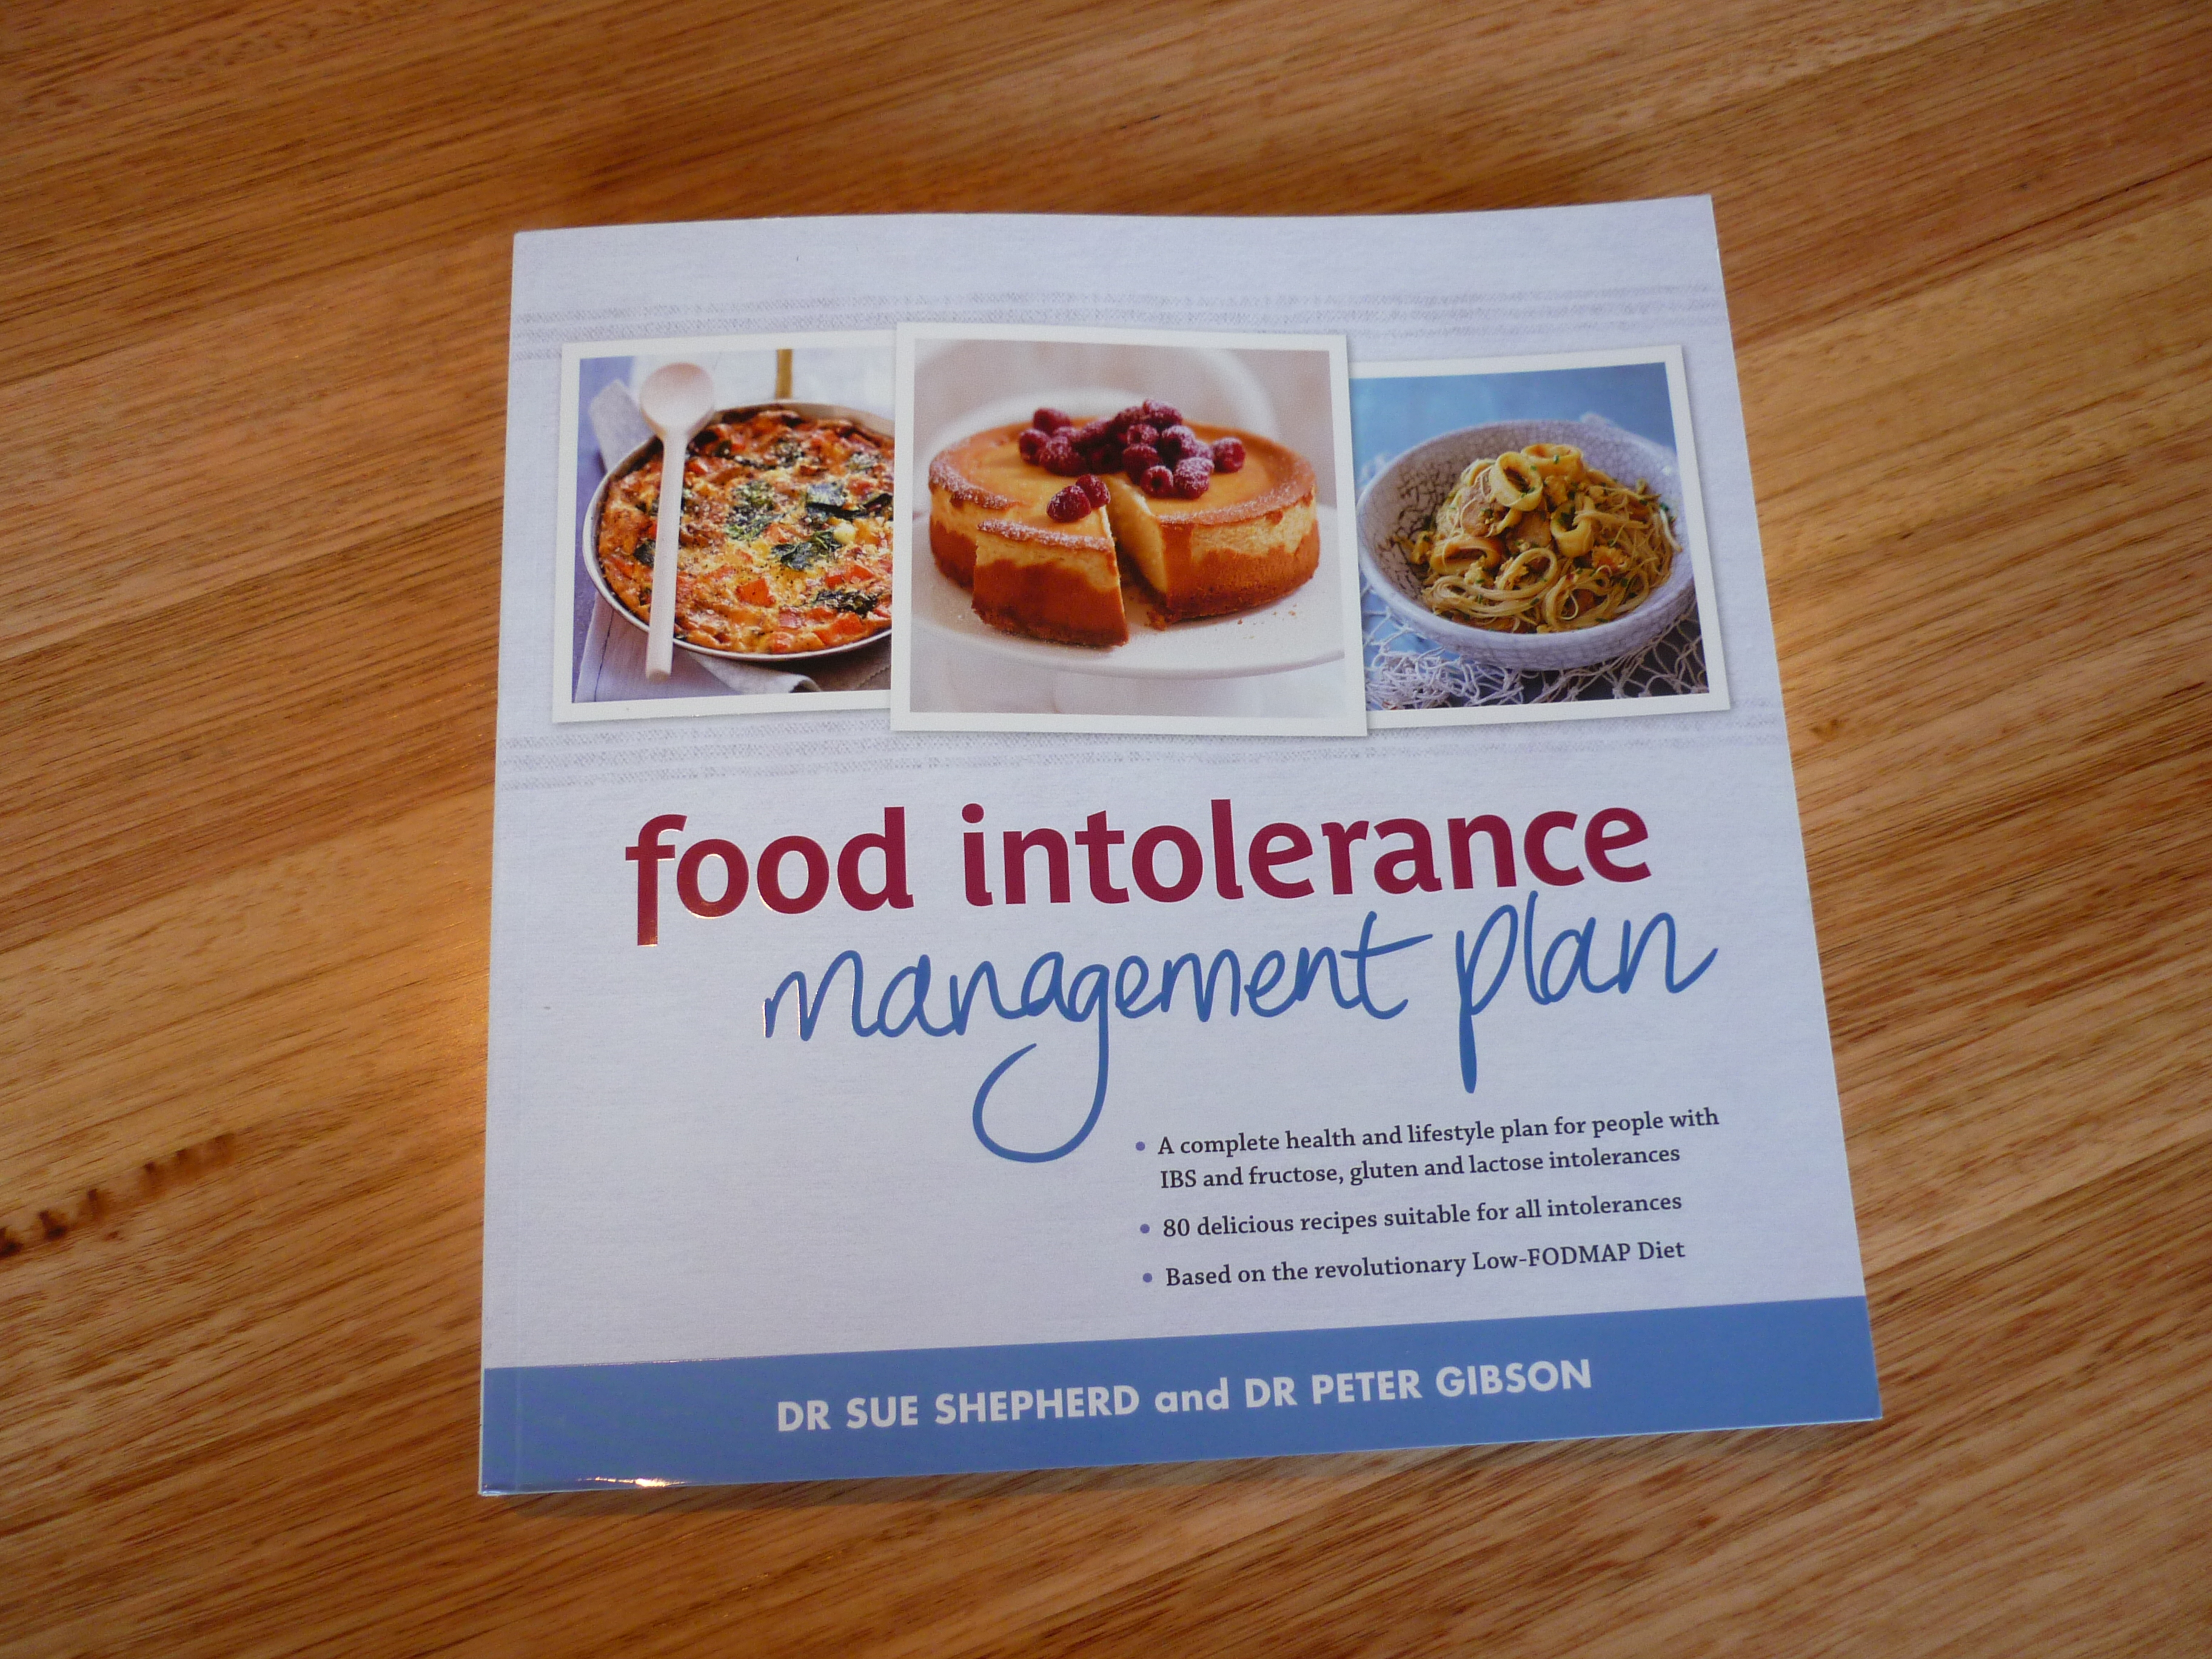 Food intolerance management plan by dr sue shepherd and dr peter this book forumfinder Gallery